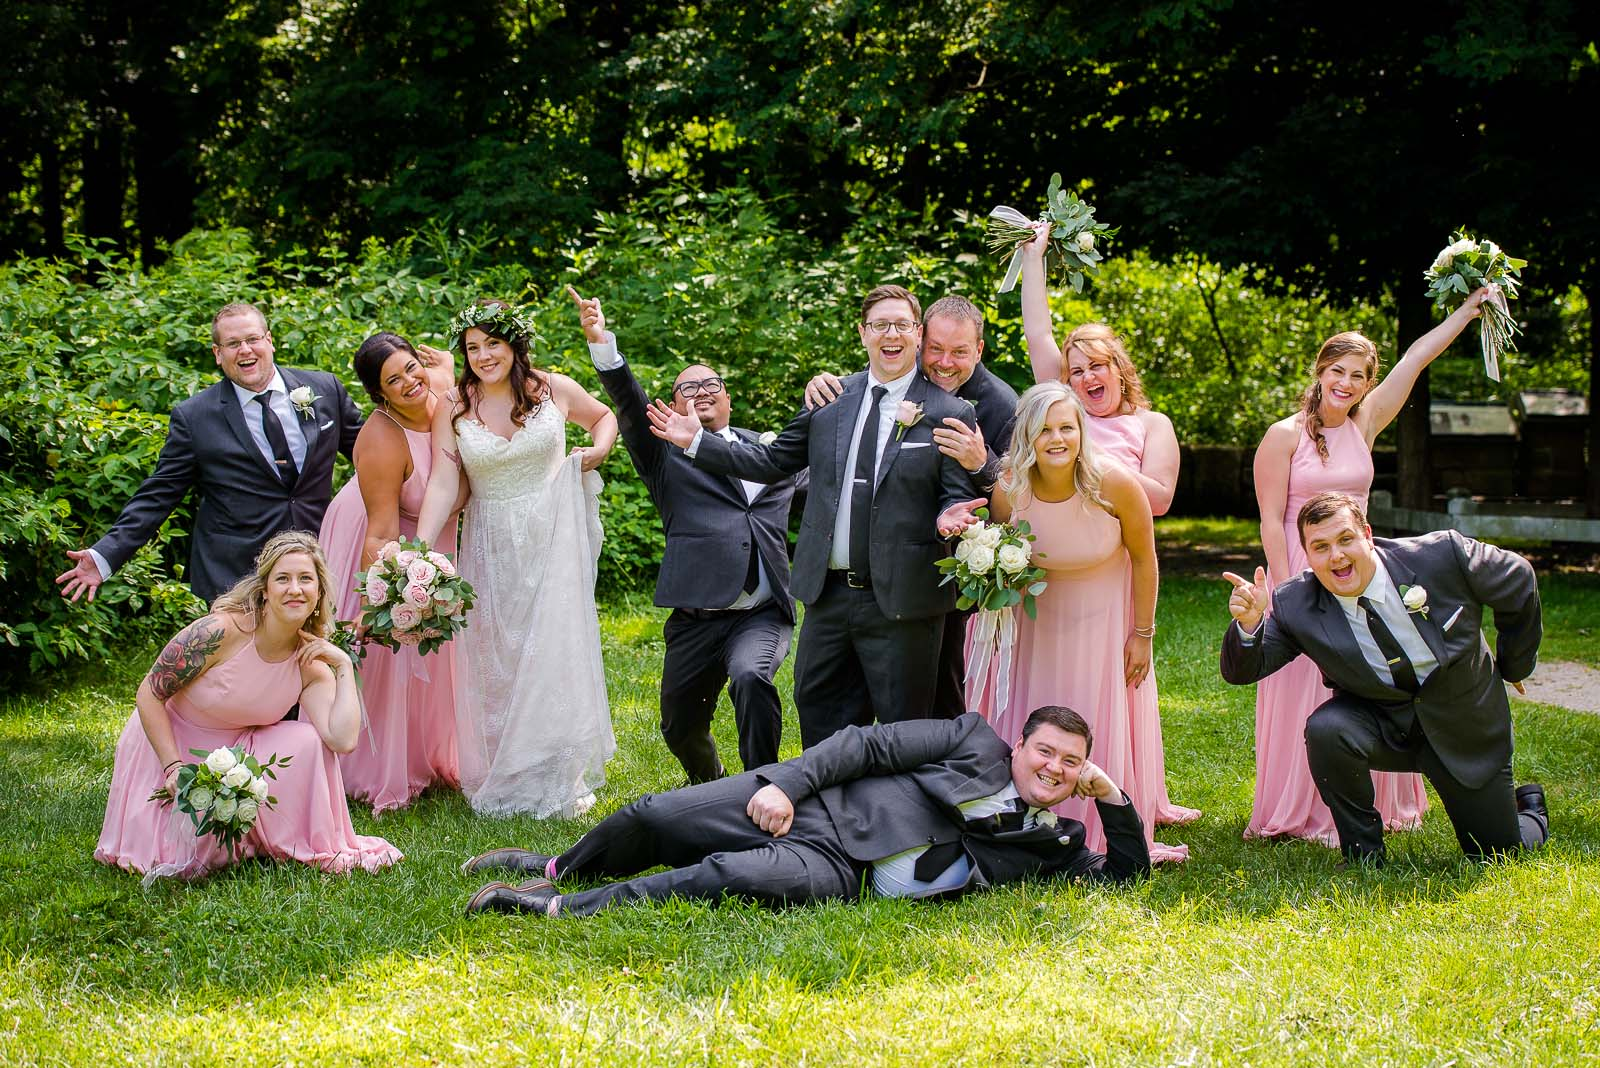 Eric_and_Christy_Photography_Blog_Wedding_Keara&Andy-22